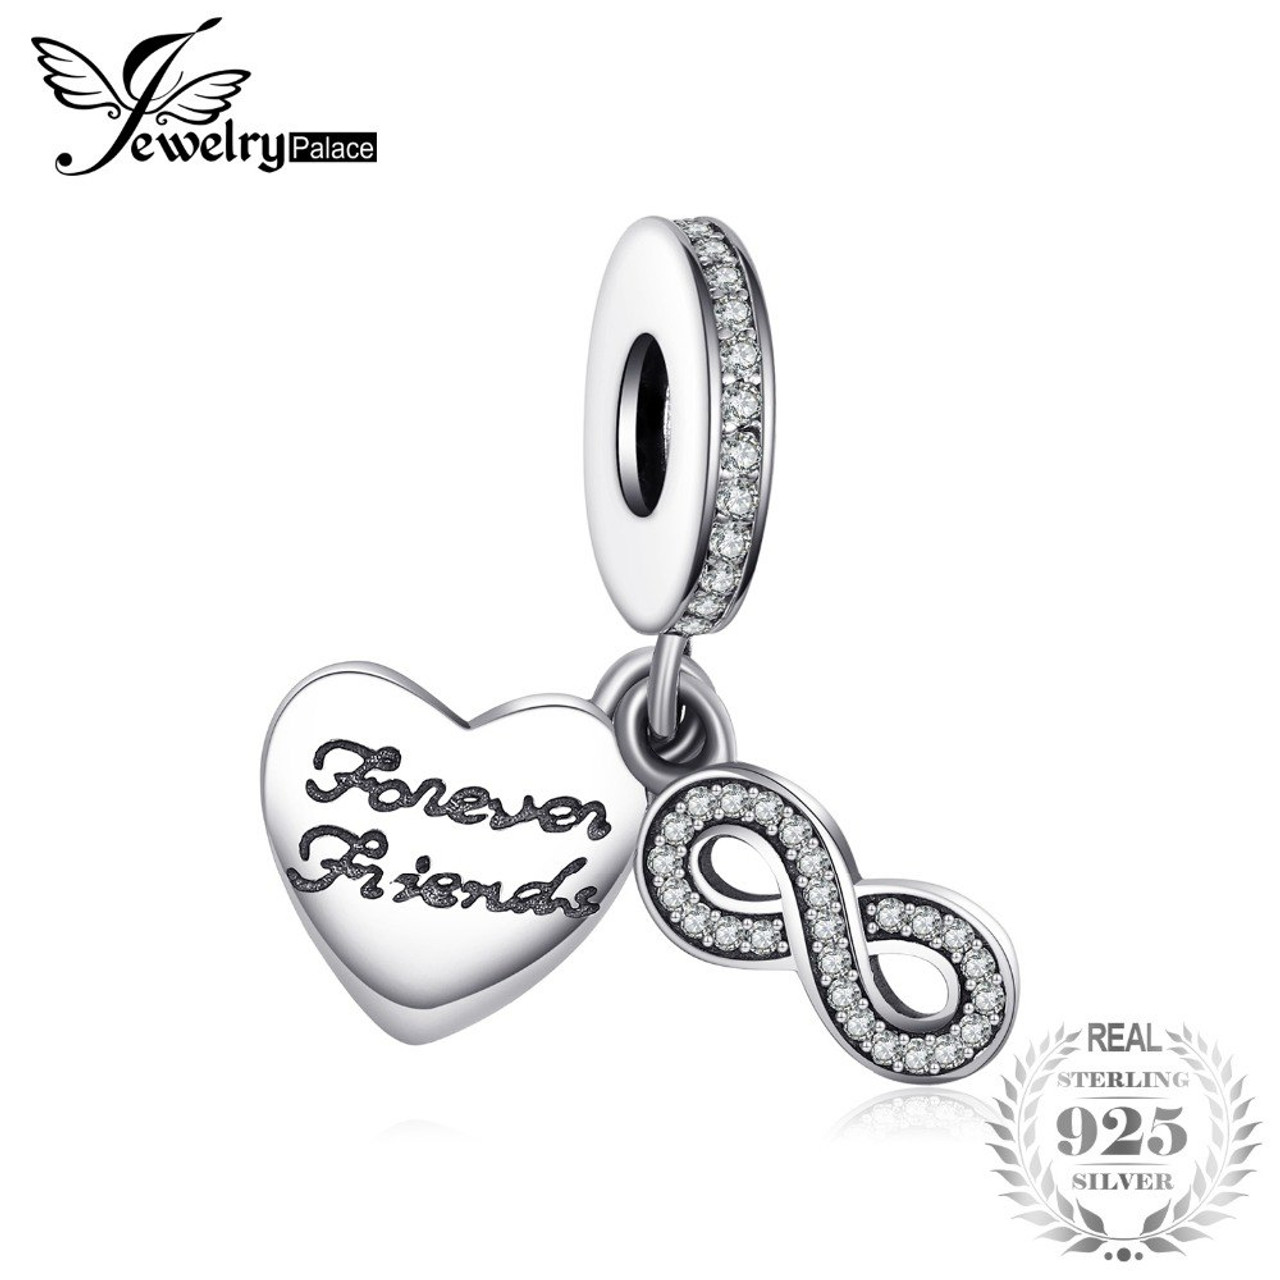 53ad0a8e44c8 Jewelrypalace 925 Sterling Silver Infinity Friendship Cubic Zirconia Charm Bracelets  Gifts For Women Trendy Jewelry Nice ...